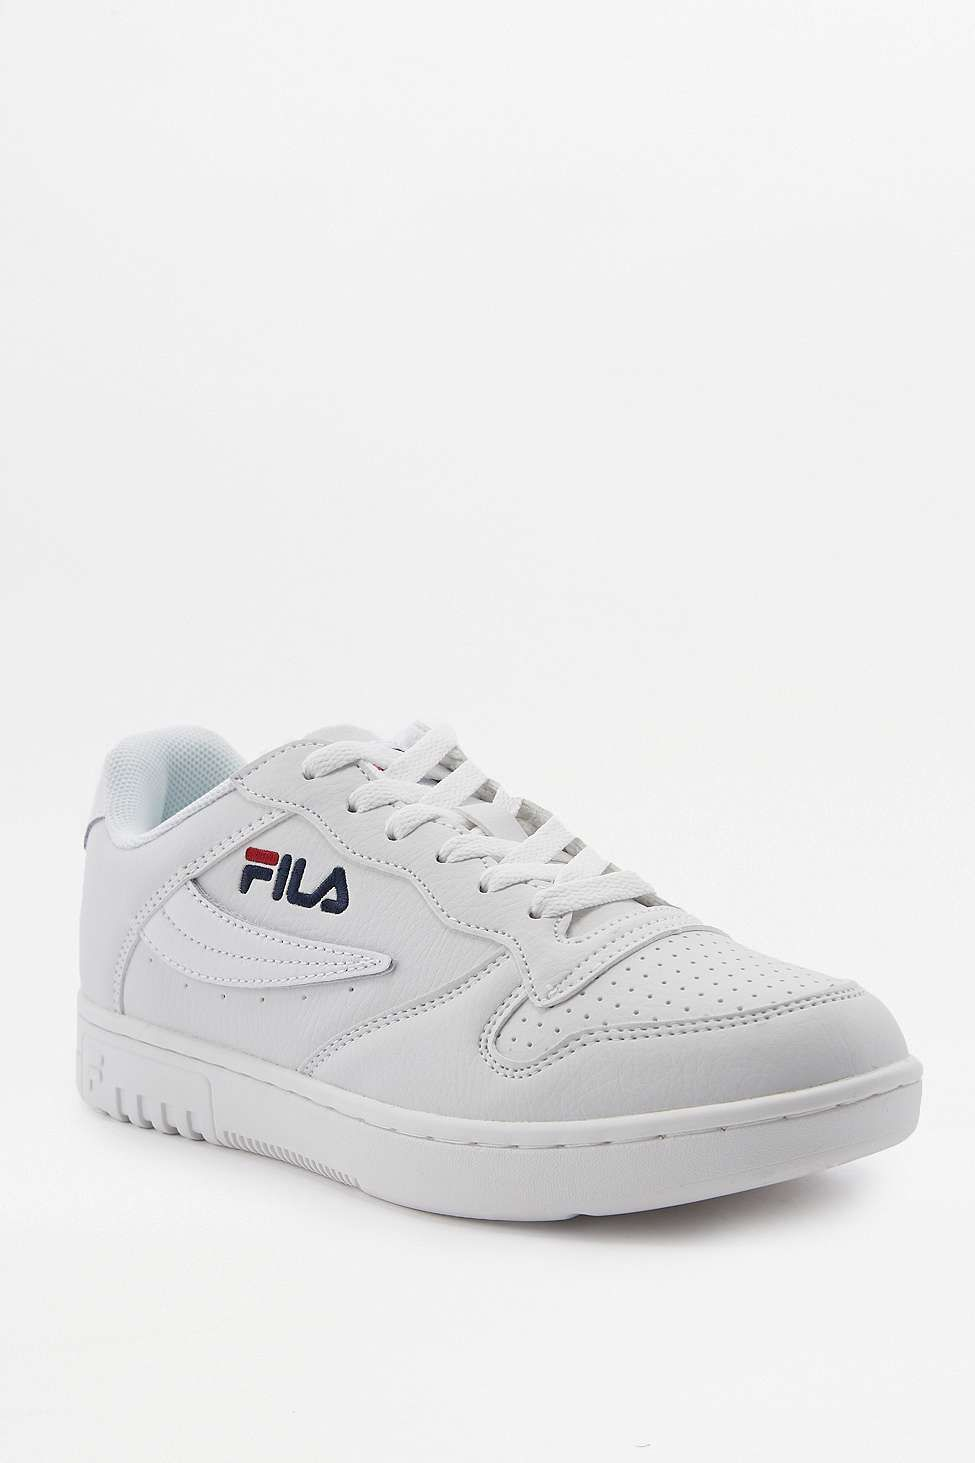 46b12ca4f23 Fila FX-100 White Low Top Trainers